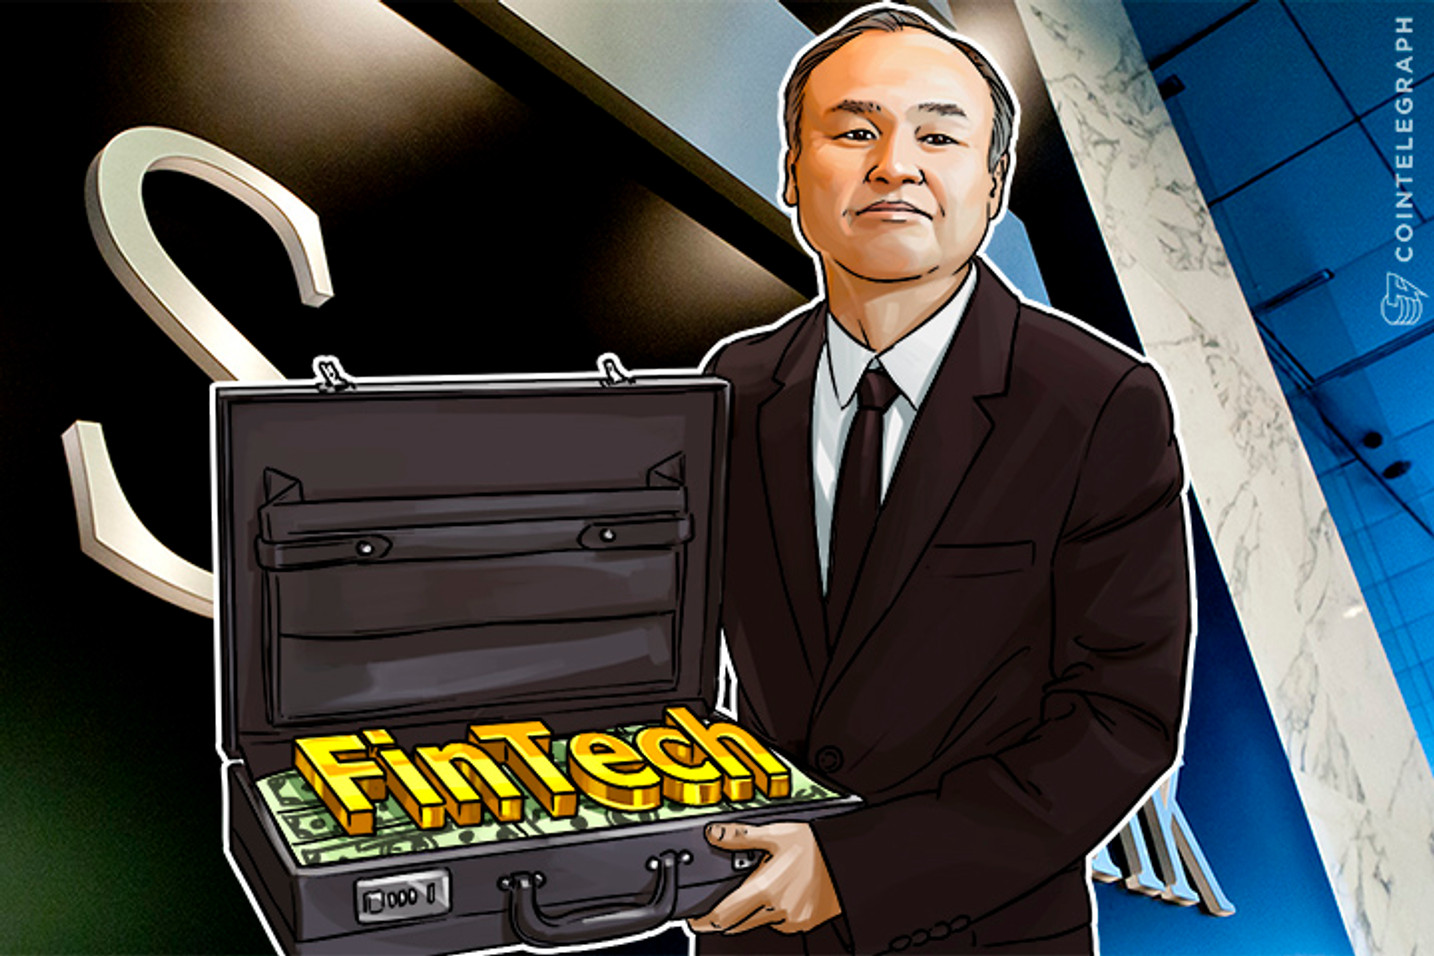 Softbank, Saudi Arabia To Invest $100 Bln in Tech Revolution, Fintech Startups First to Benefit